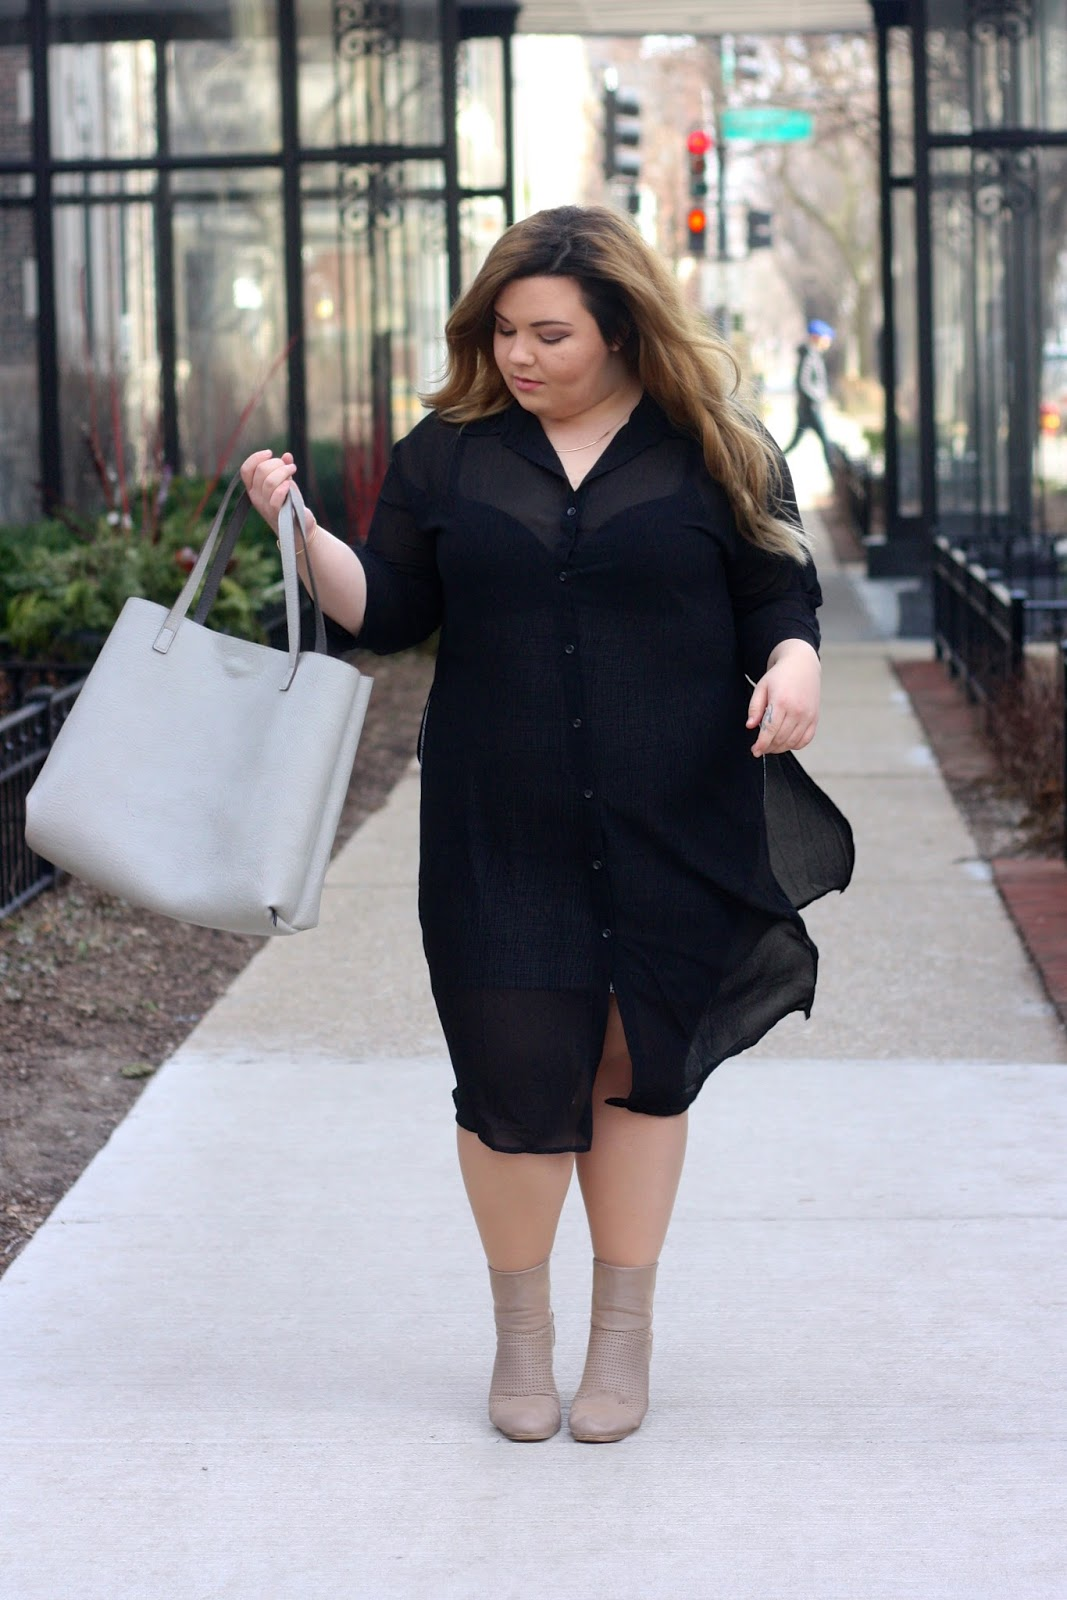 Day To Day Natalie In The City A Chicago Plus Size Fashion Blog